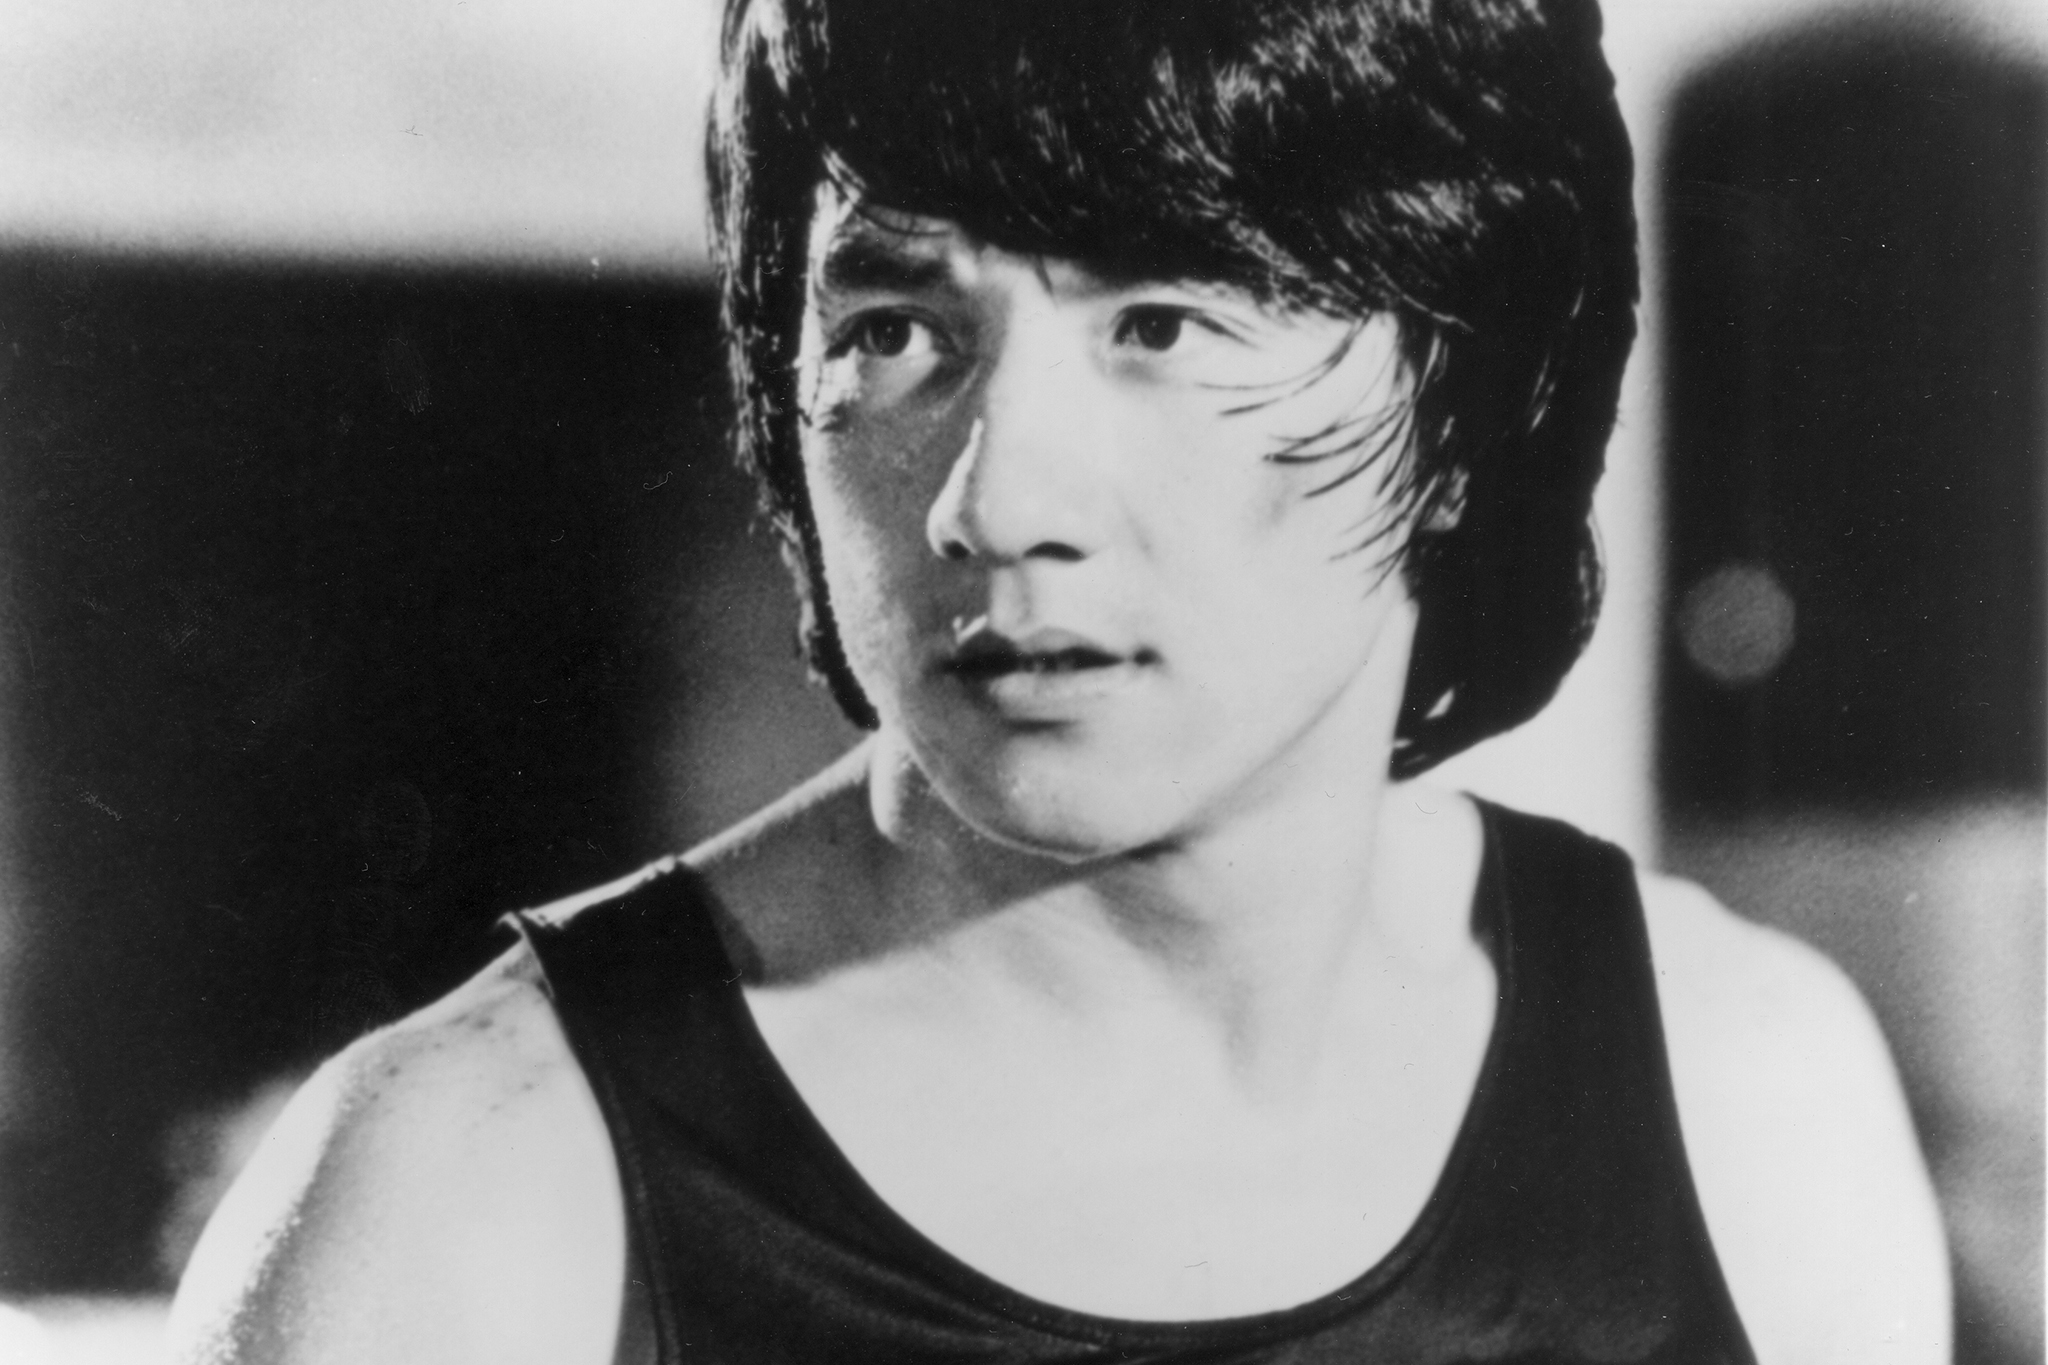 Wheels on Meals, 100 best action movies, Jackie Chan